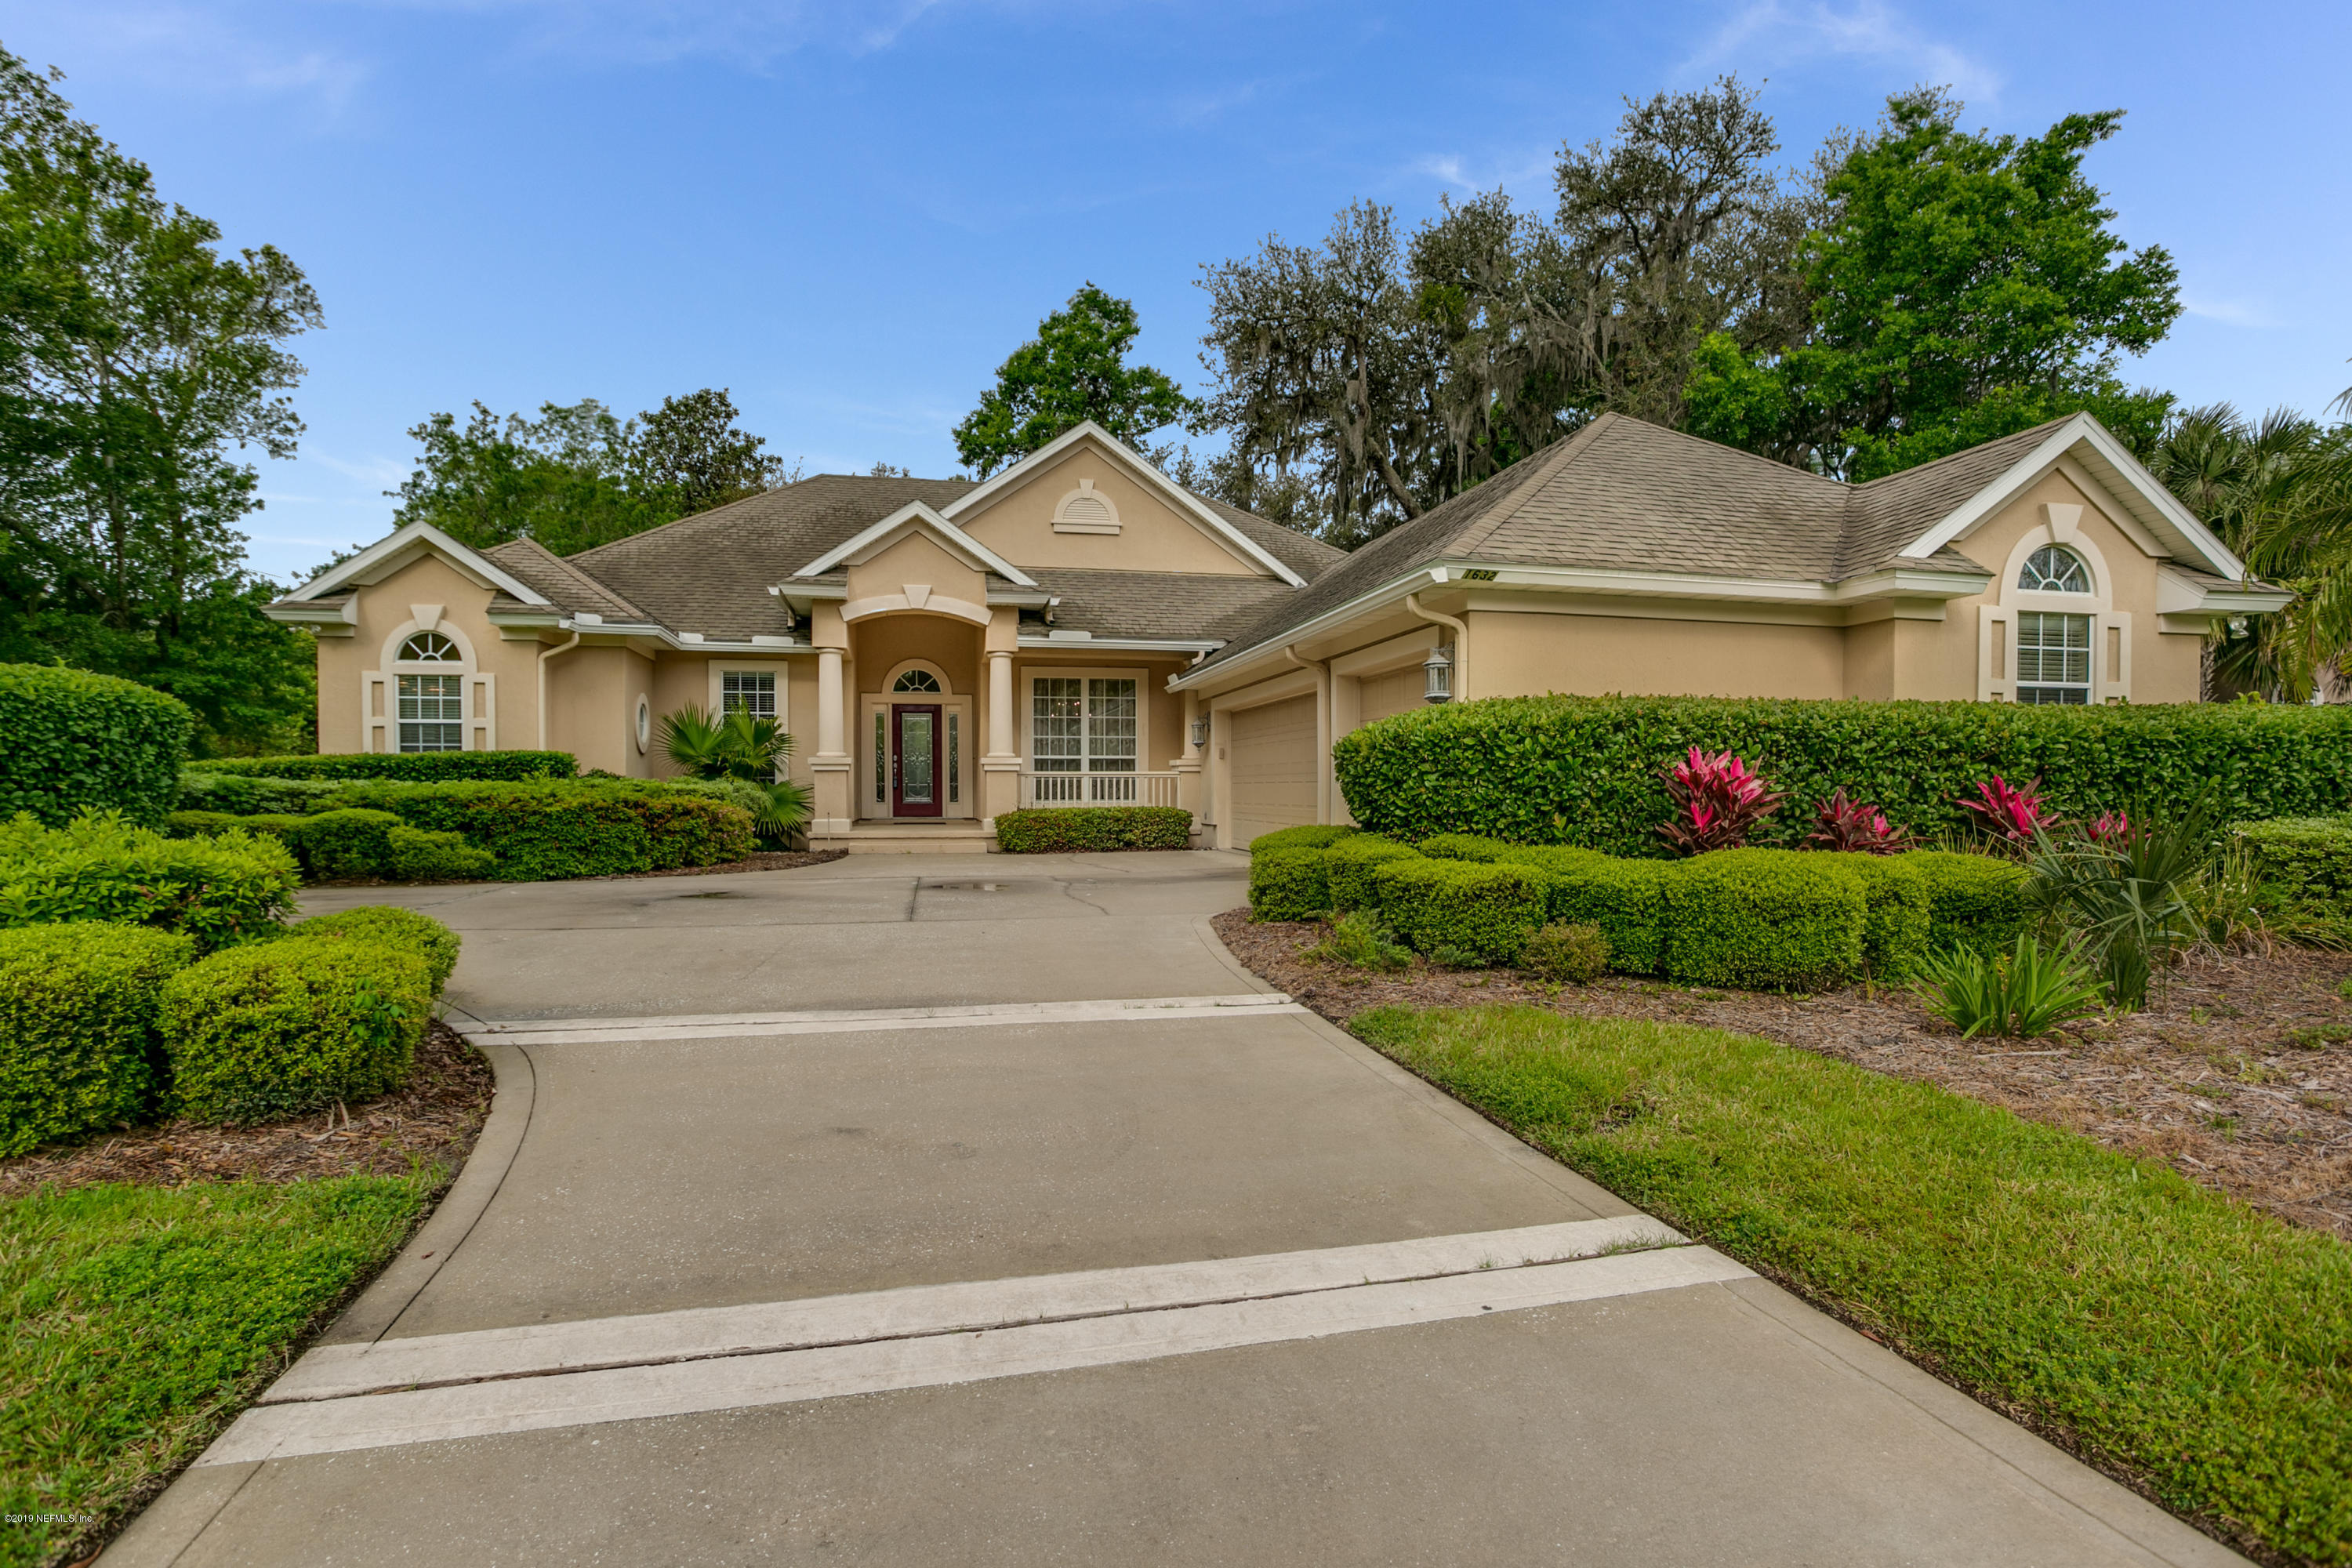 1632 DOVER HILL, JACKSONVILLE, FLORIDA 32225, 5 Bedrooms Bedrooms, ,4 BathroomsBathrooms,Residential - single family,For sale,DOVER HILL,989000